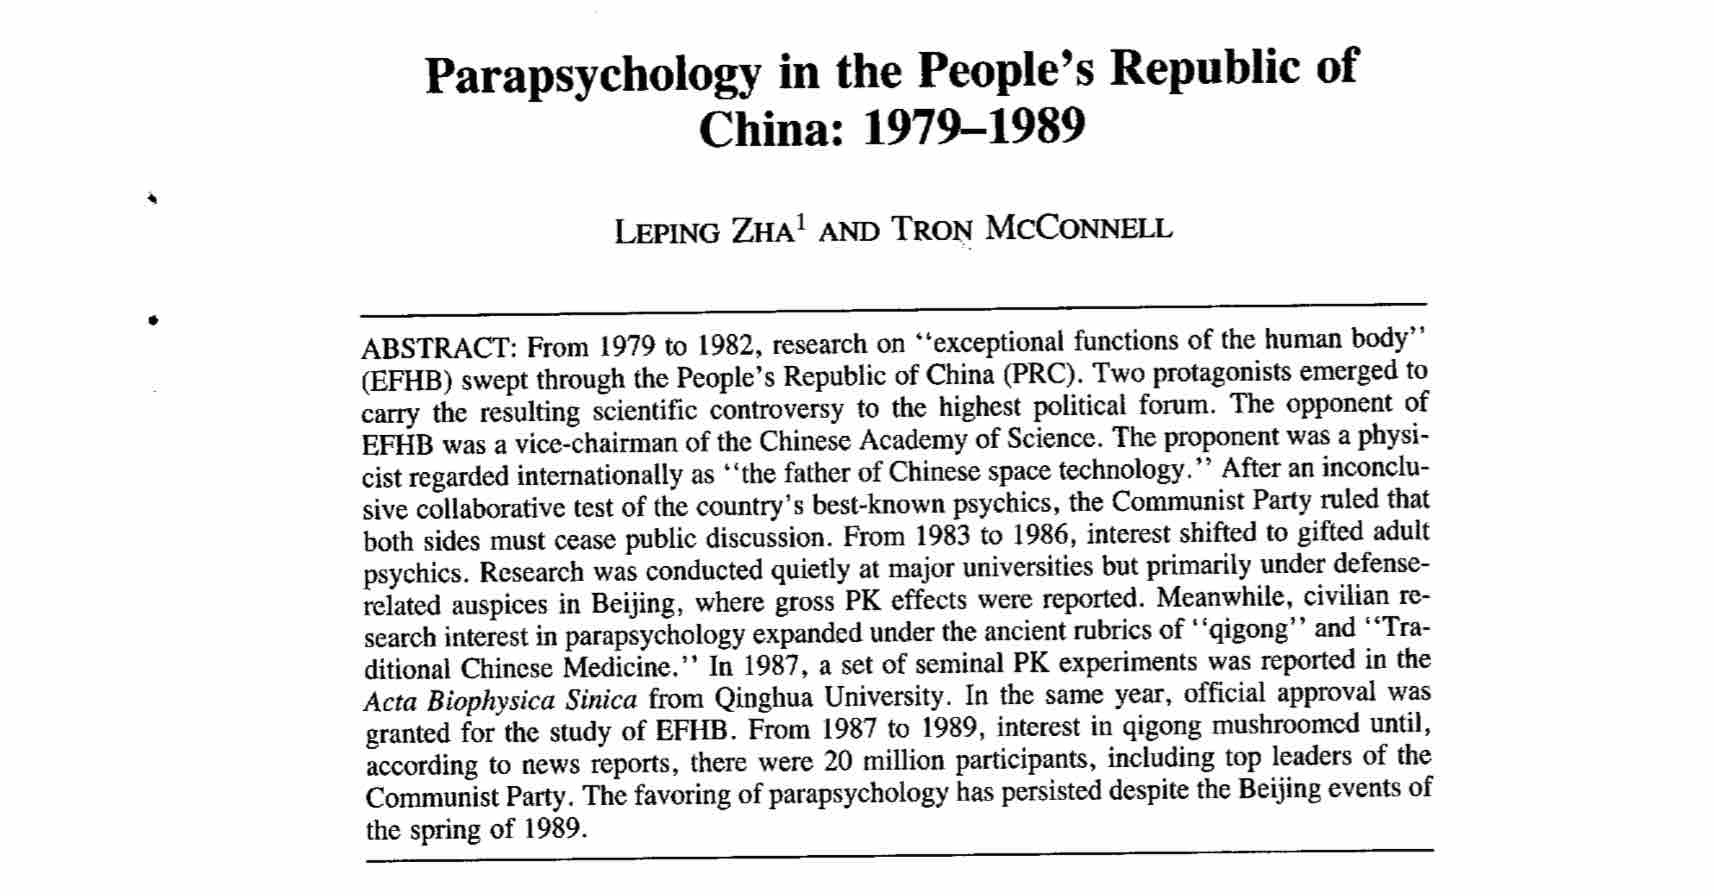 Parapsychology in the People's Republic of China